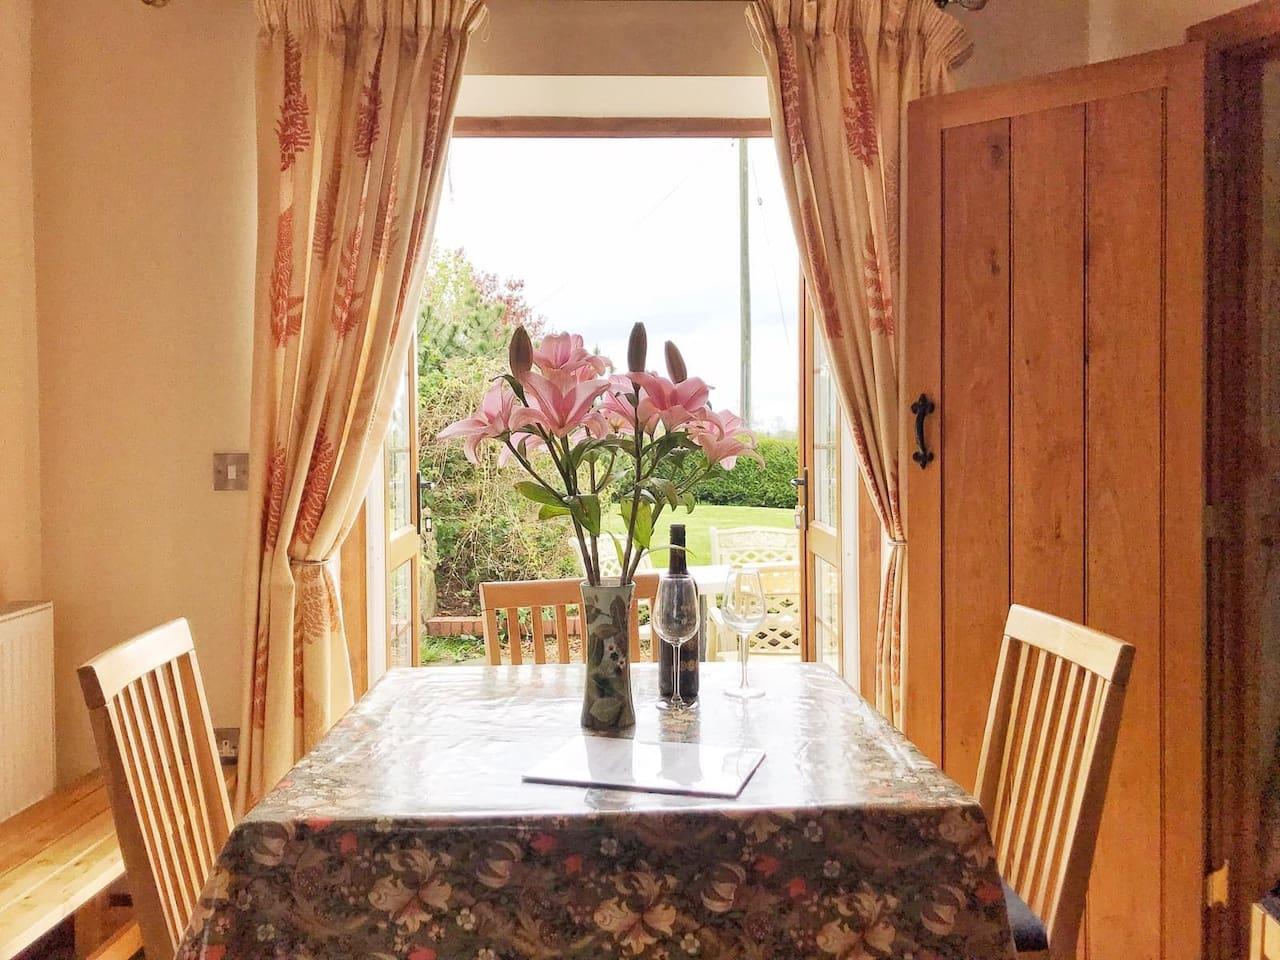 Dining area with double doors opening onto the patio and lawn area with far reaching views - perfect for sunny days and evenings and for children to play.